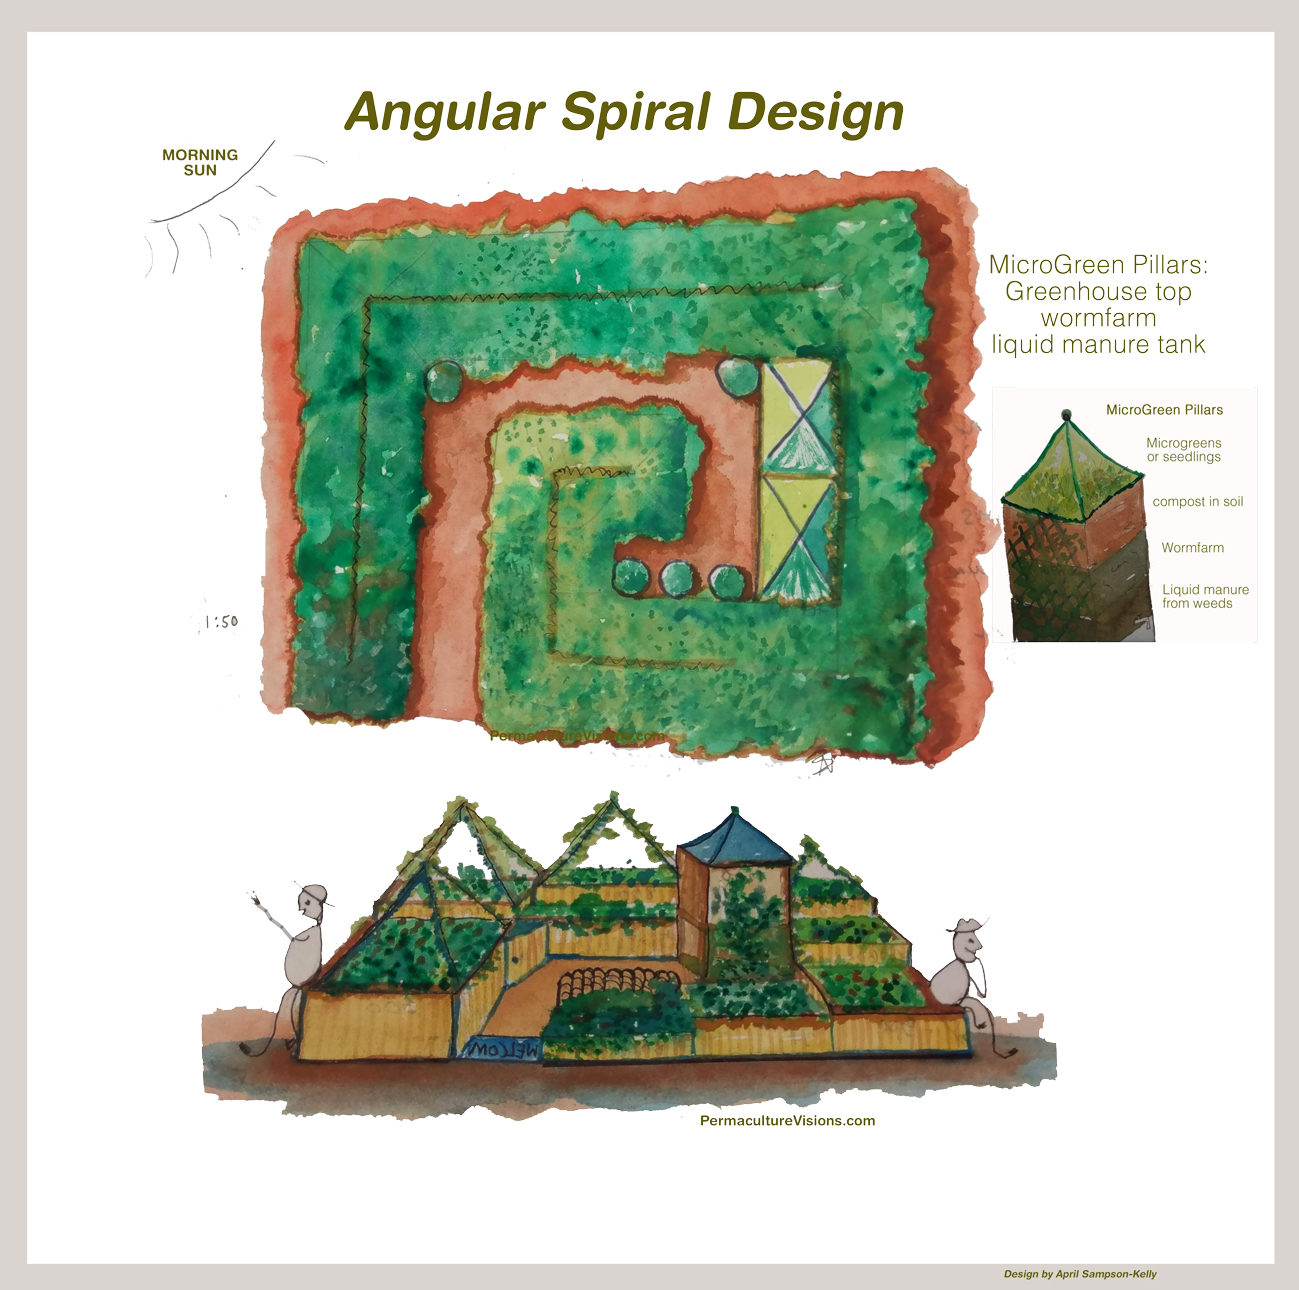 Attachment Community Garden Plot Angular Spiral Design.jpg